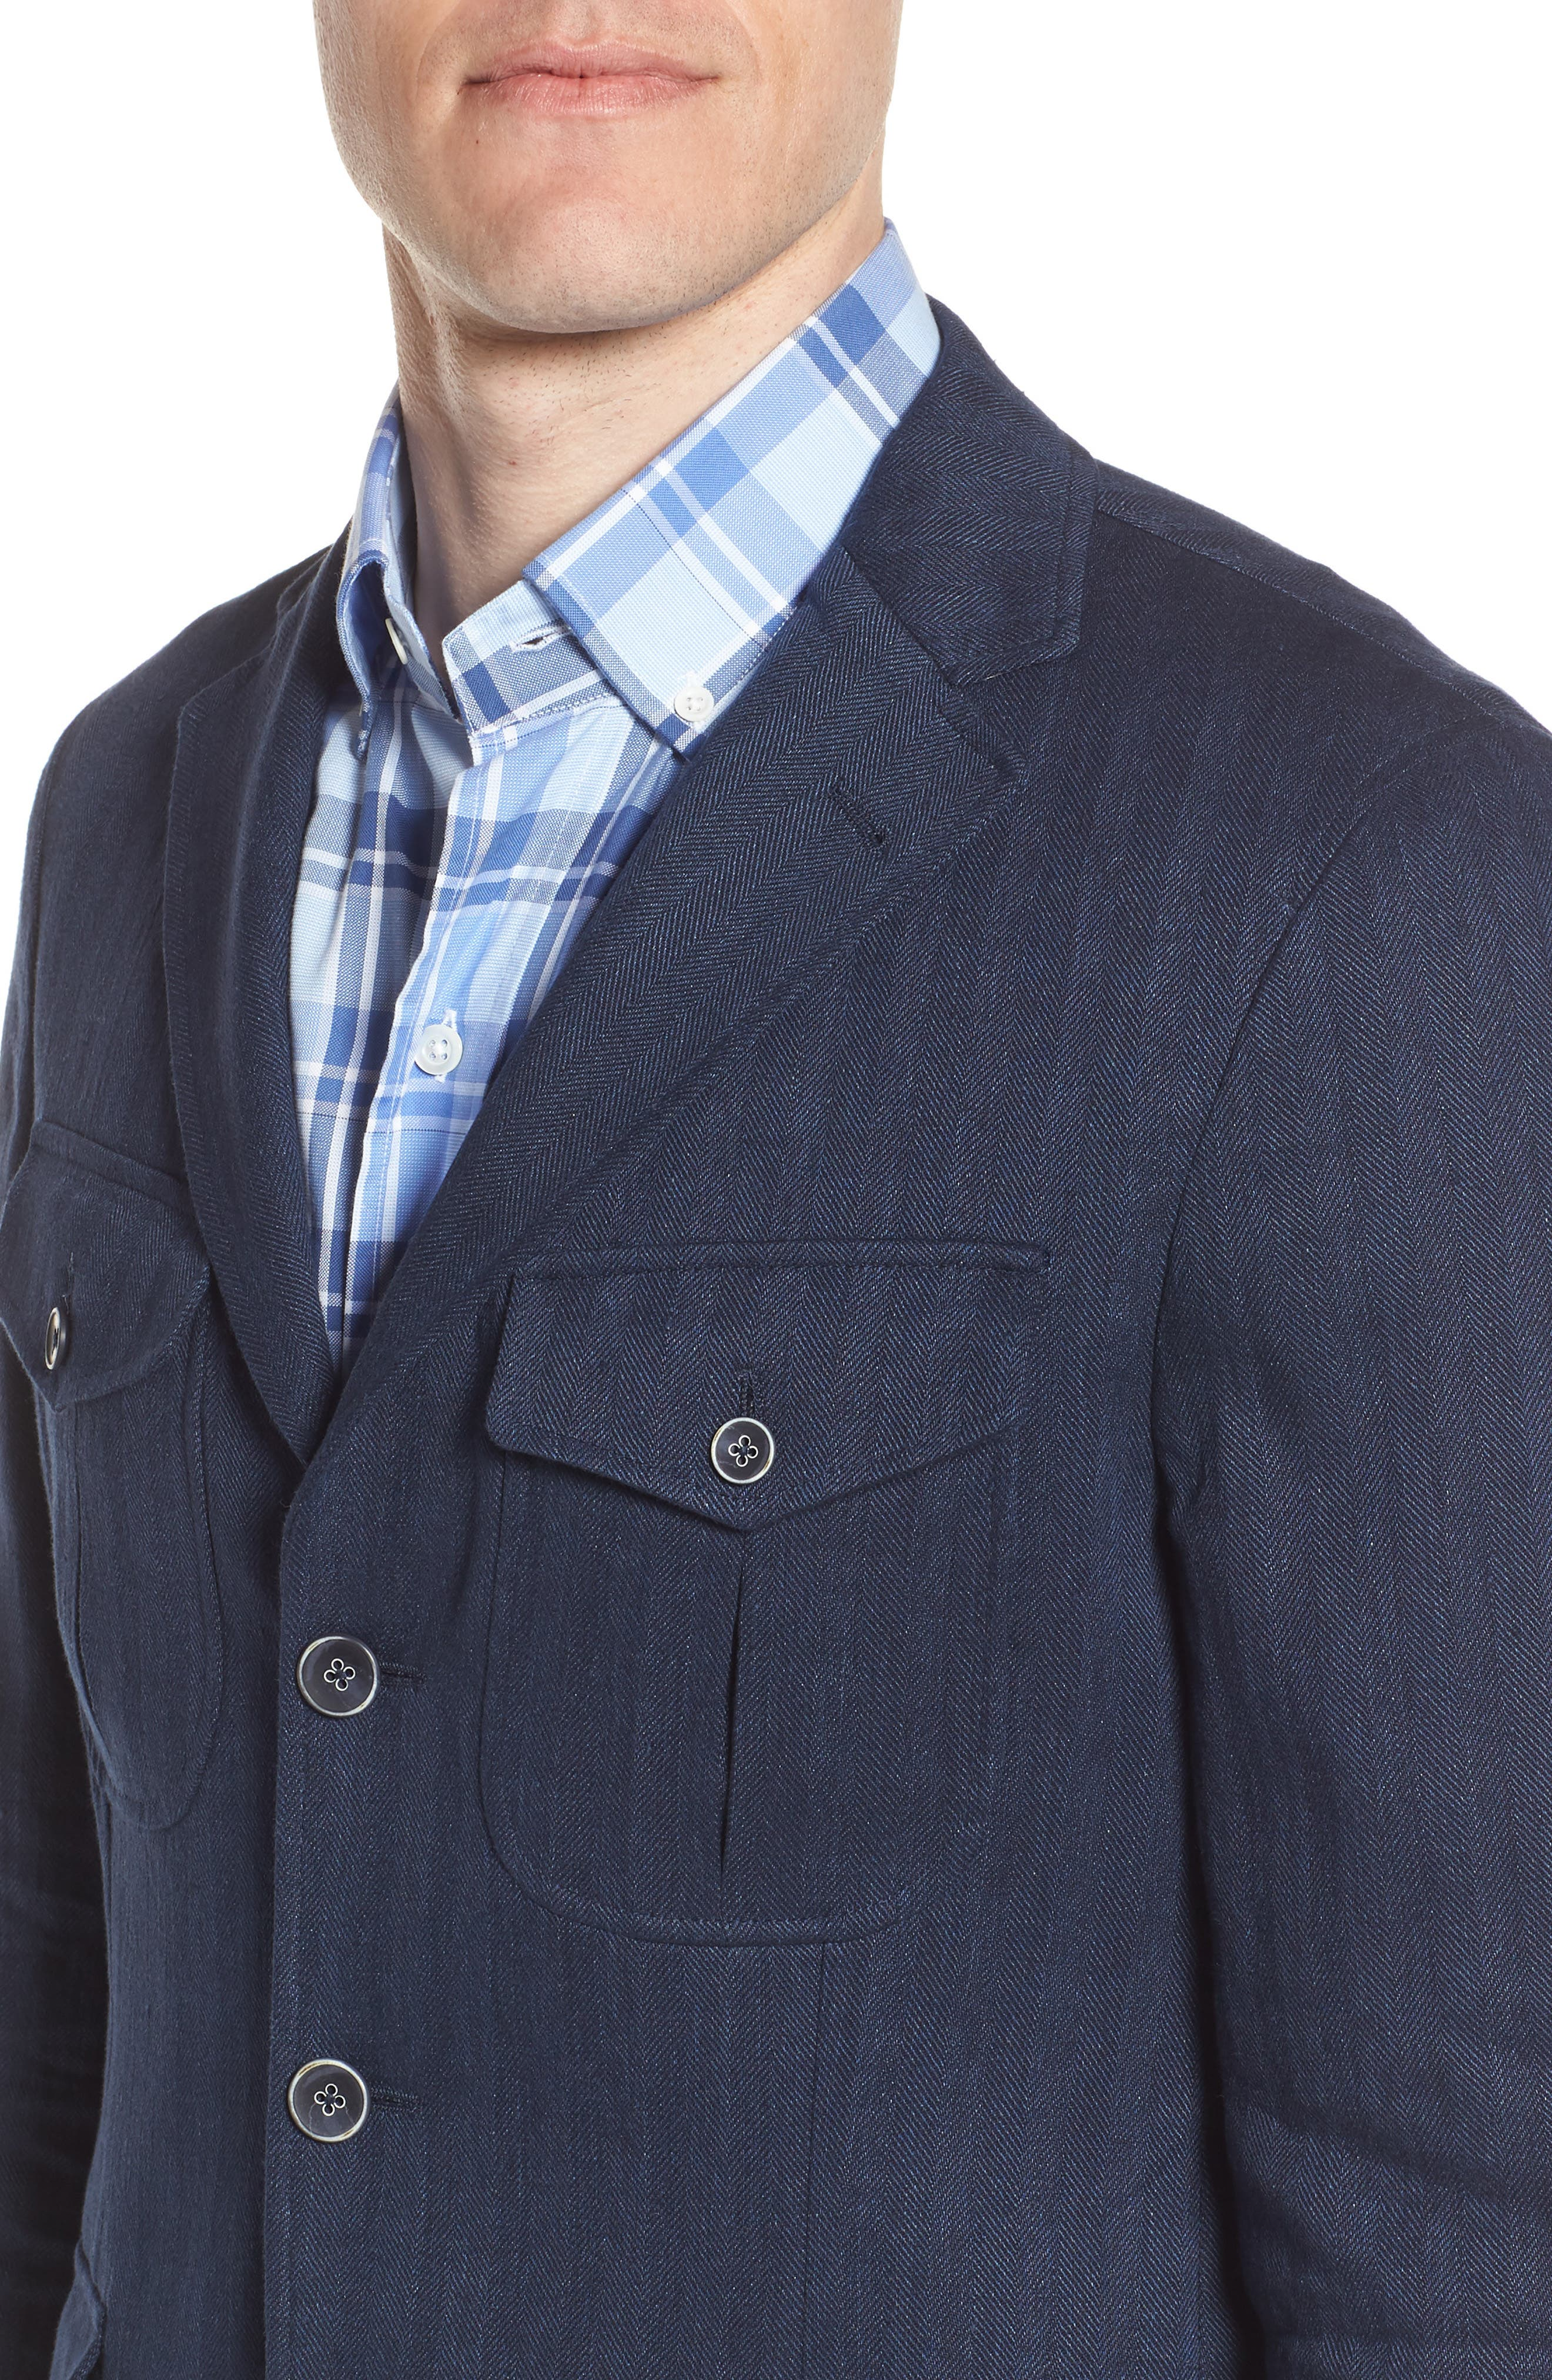 Herringbone Safari Blazer,                             Alternate thumbnail 4, color,                             411